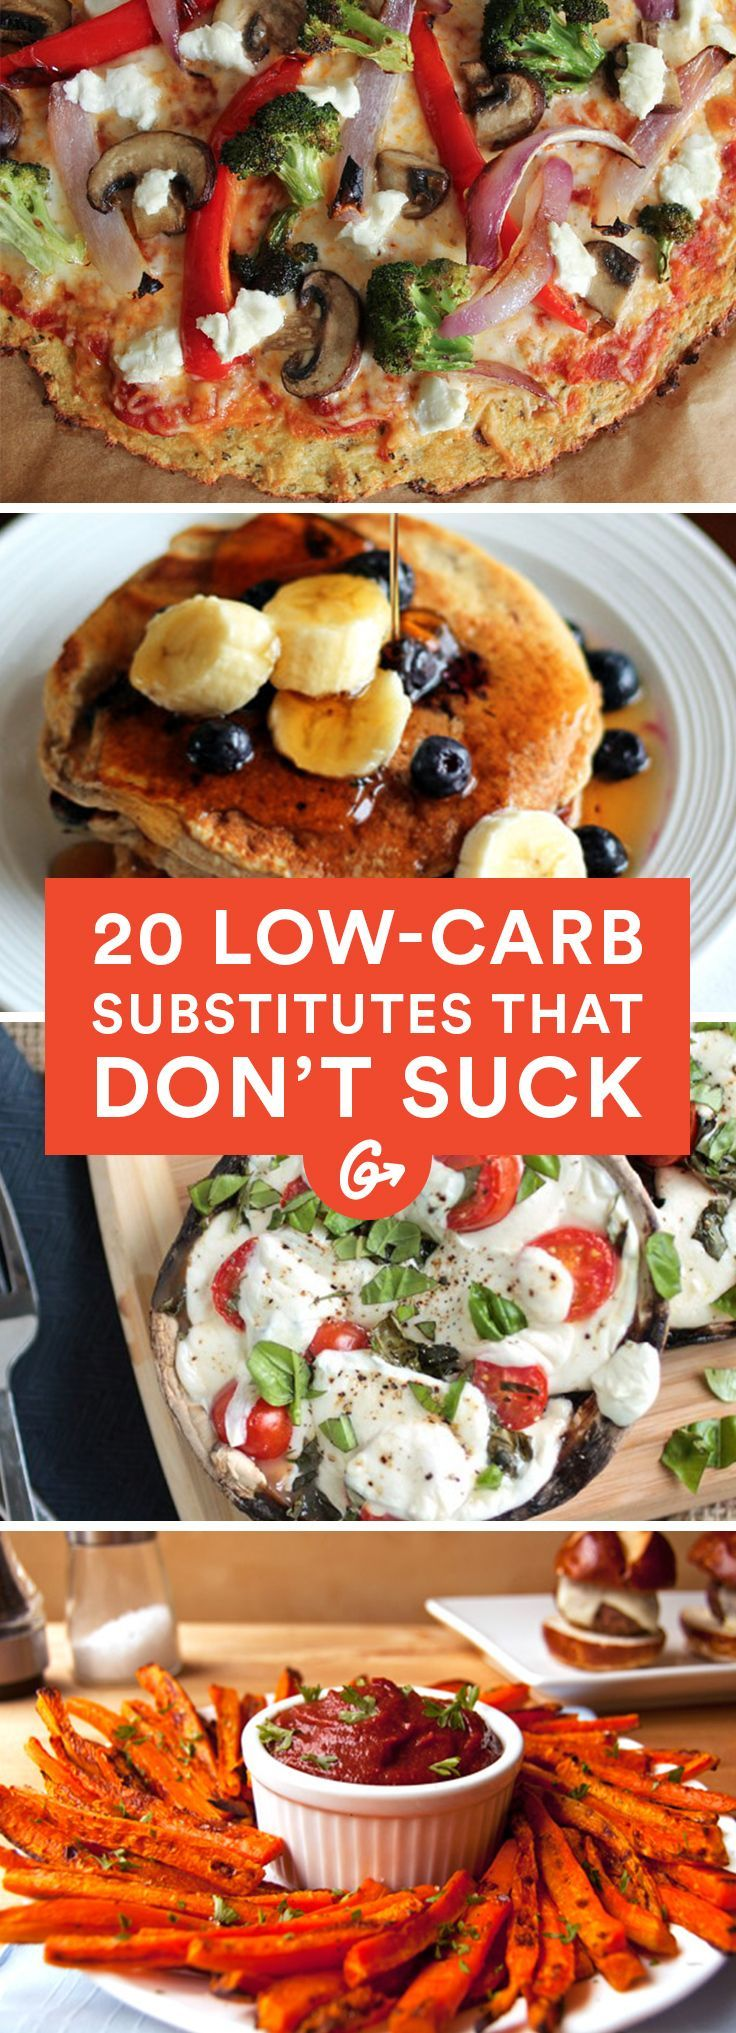 We've gathered some of the most notorious carb-heavy foods and found a delicious, low-carb alternative to satisfy any craving. #healthy #lowcarb #recipes http://greatist.com/health/lower-carb-alternatives